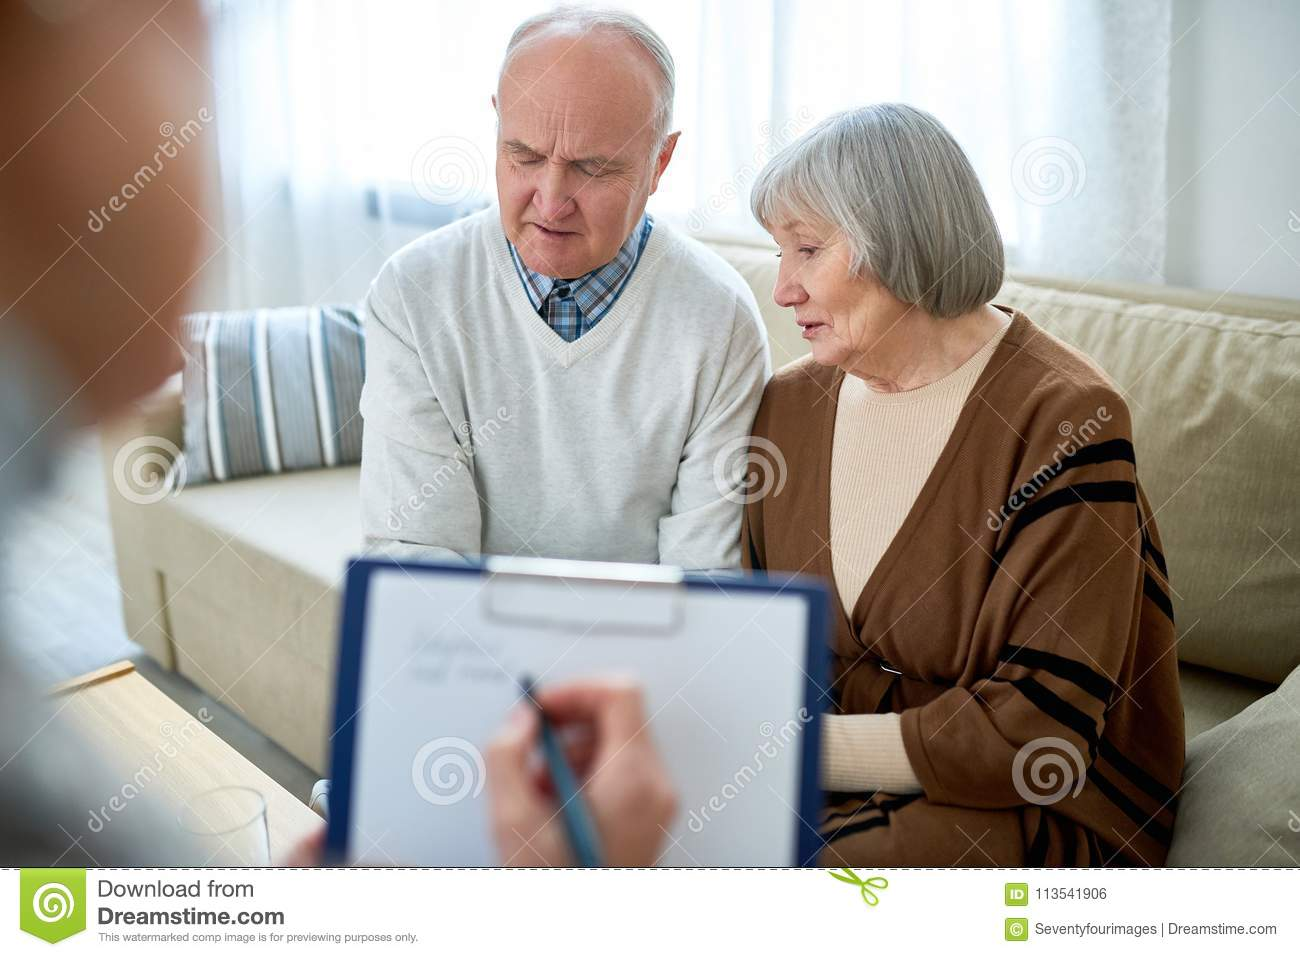 Senior Couple in Therapist Office